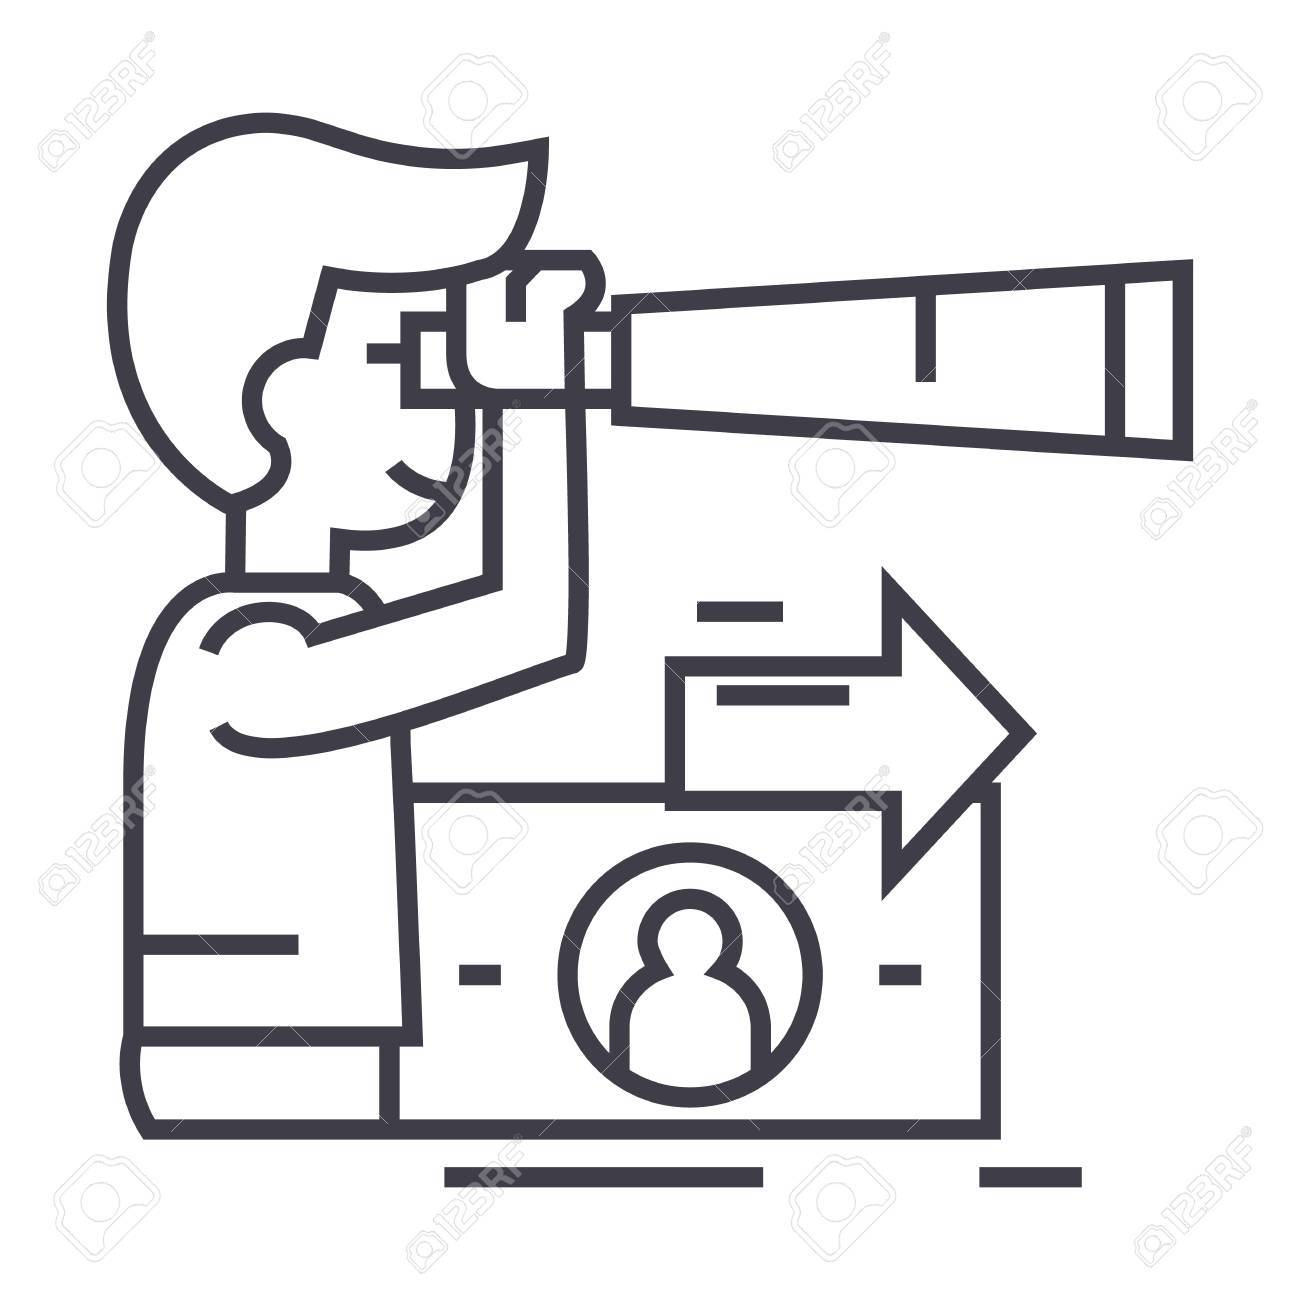 strategic vision, planning, man with spyglass vector line icon, sign, illustration on white background, editable strokes - 87220888